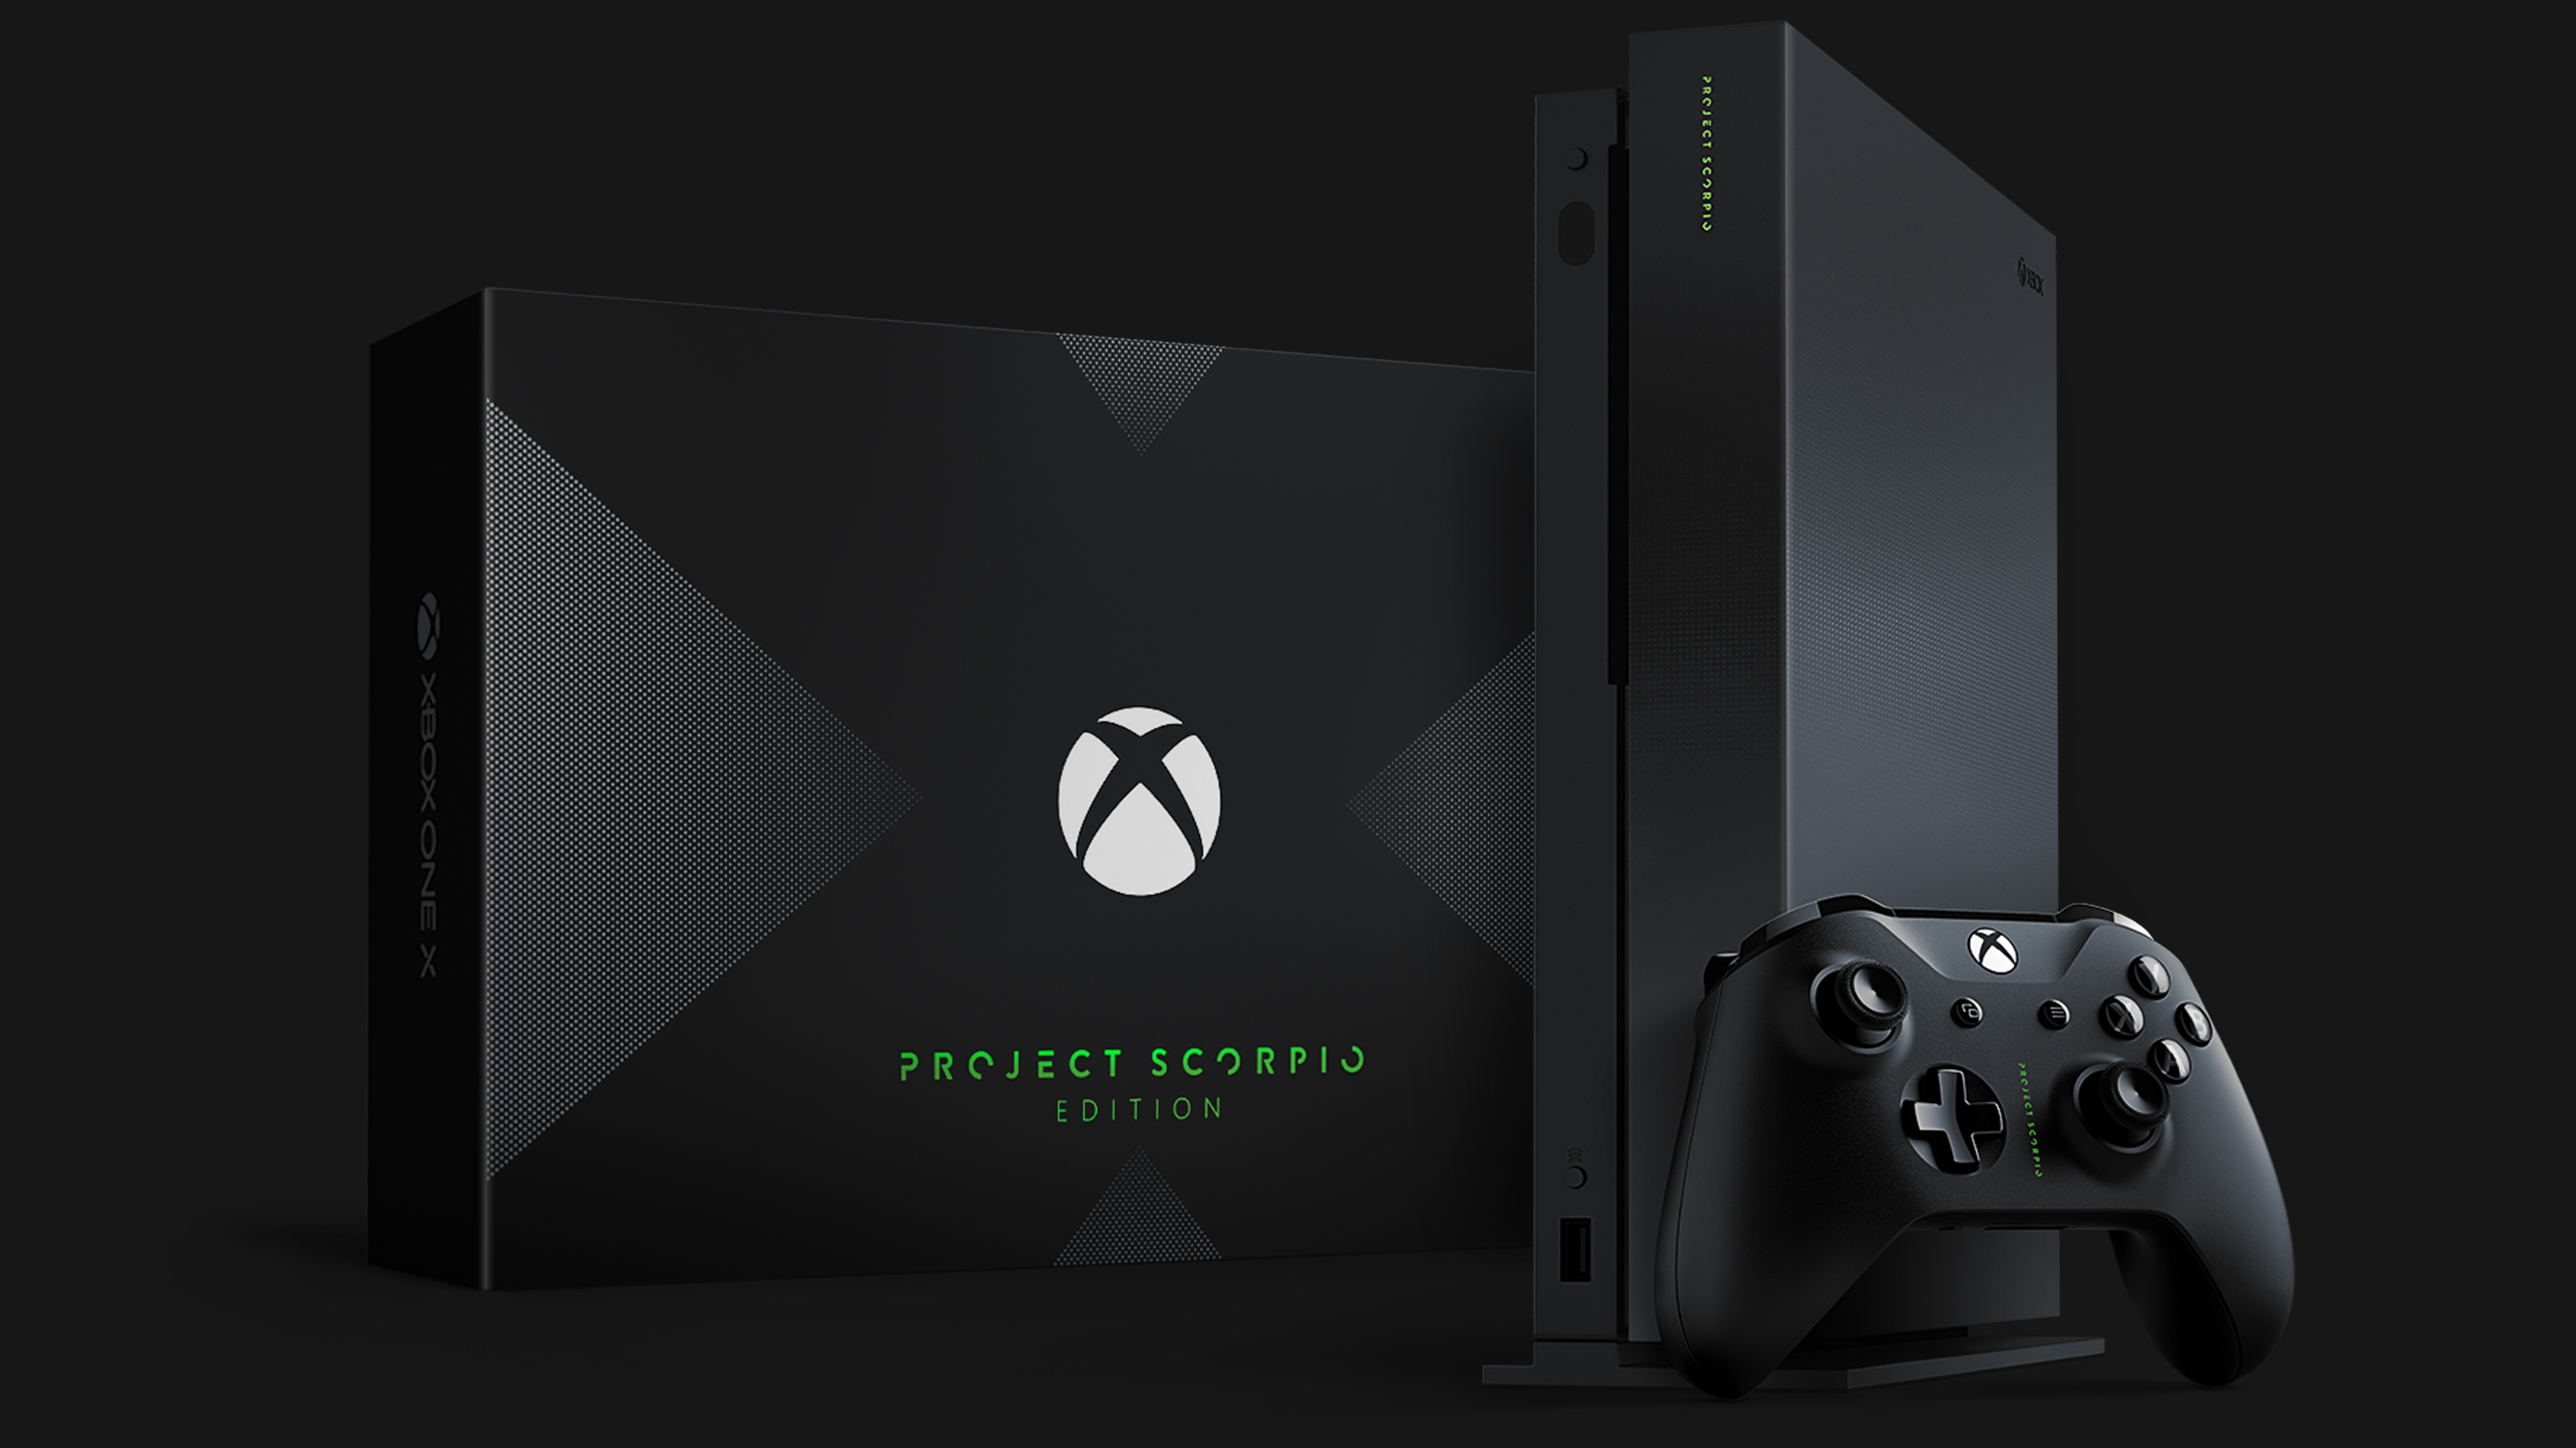 Image result for xbox one x scorpio edition